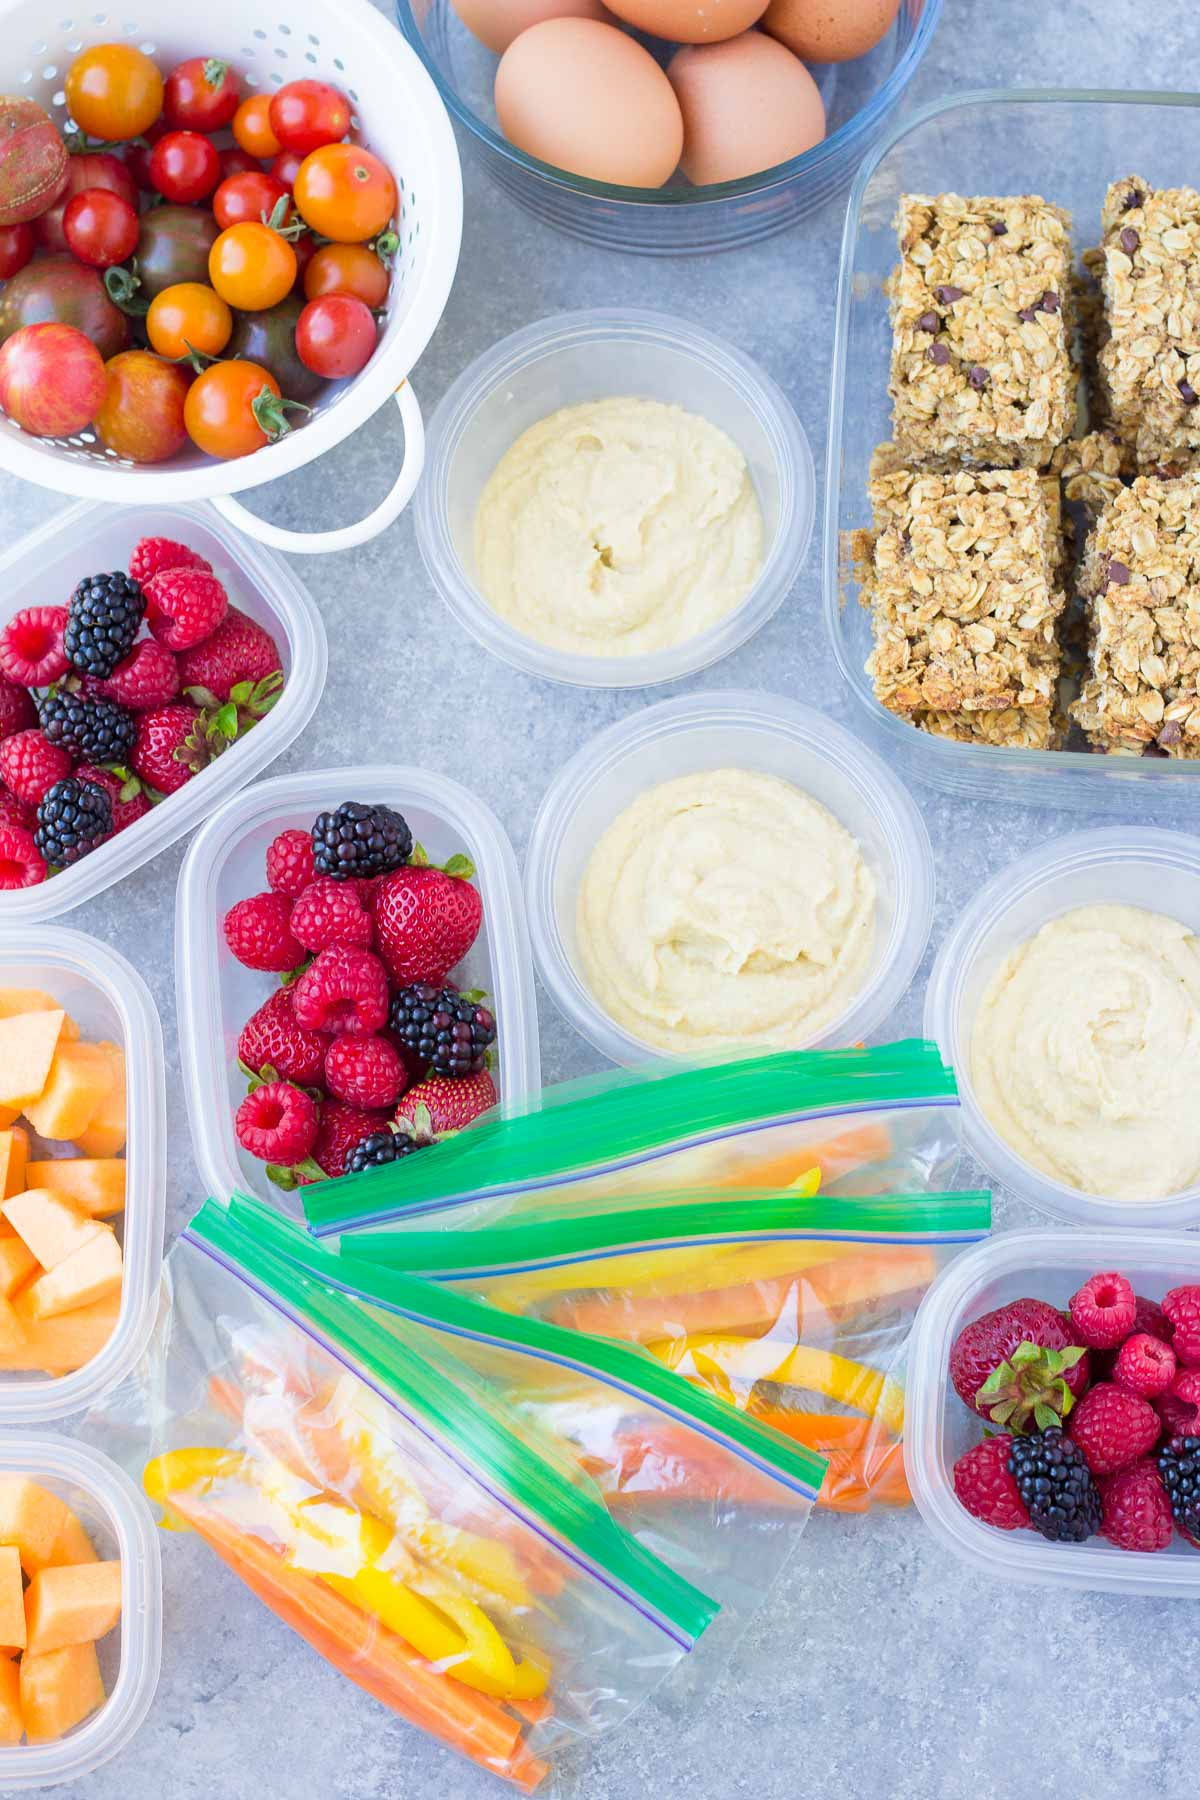 Weekly snack prep healthy and easy ideas kristine 39 s kitchen for Easy after school snacks for kids to make